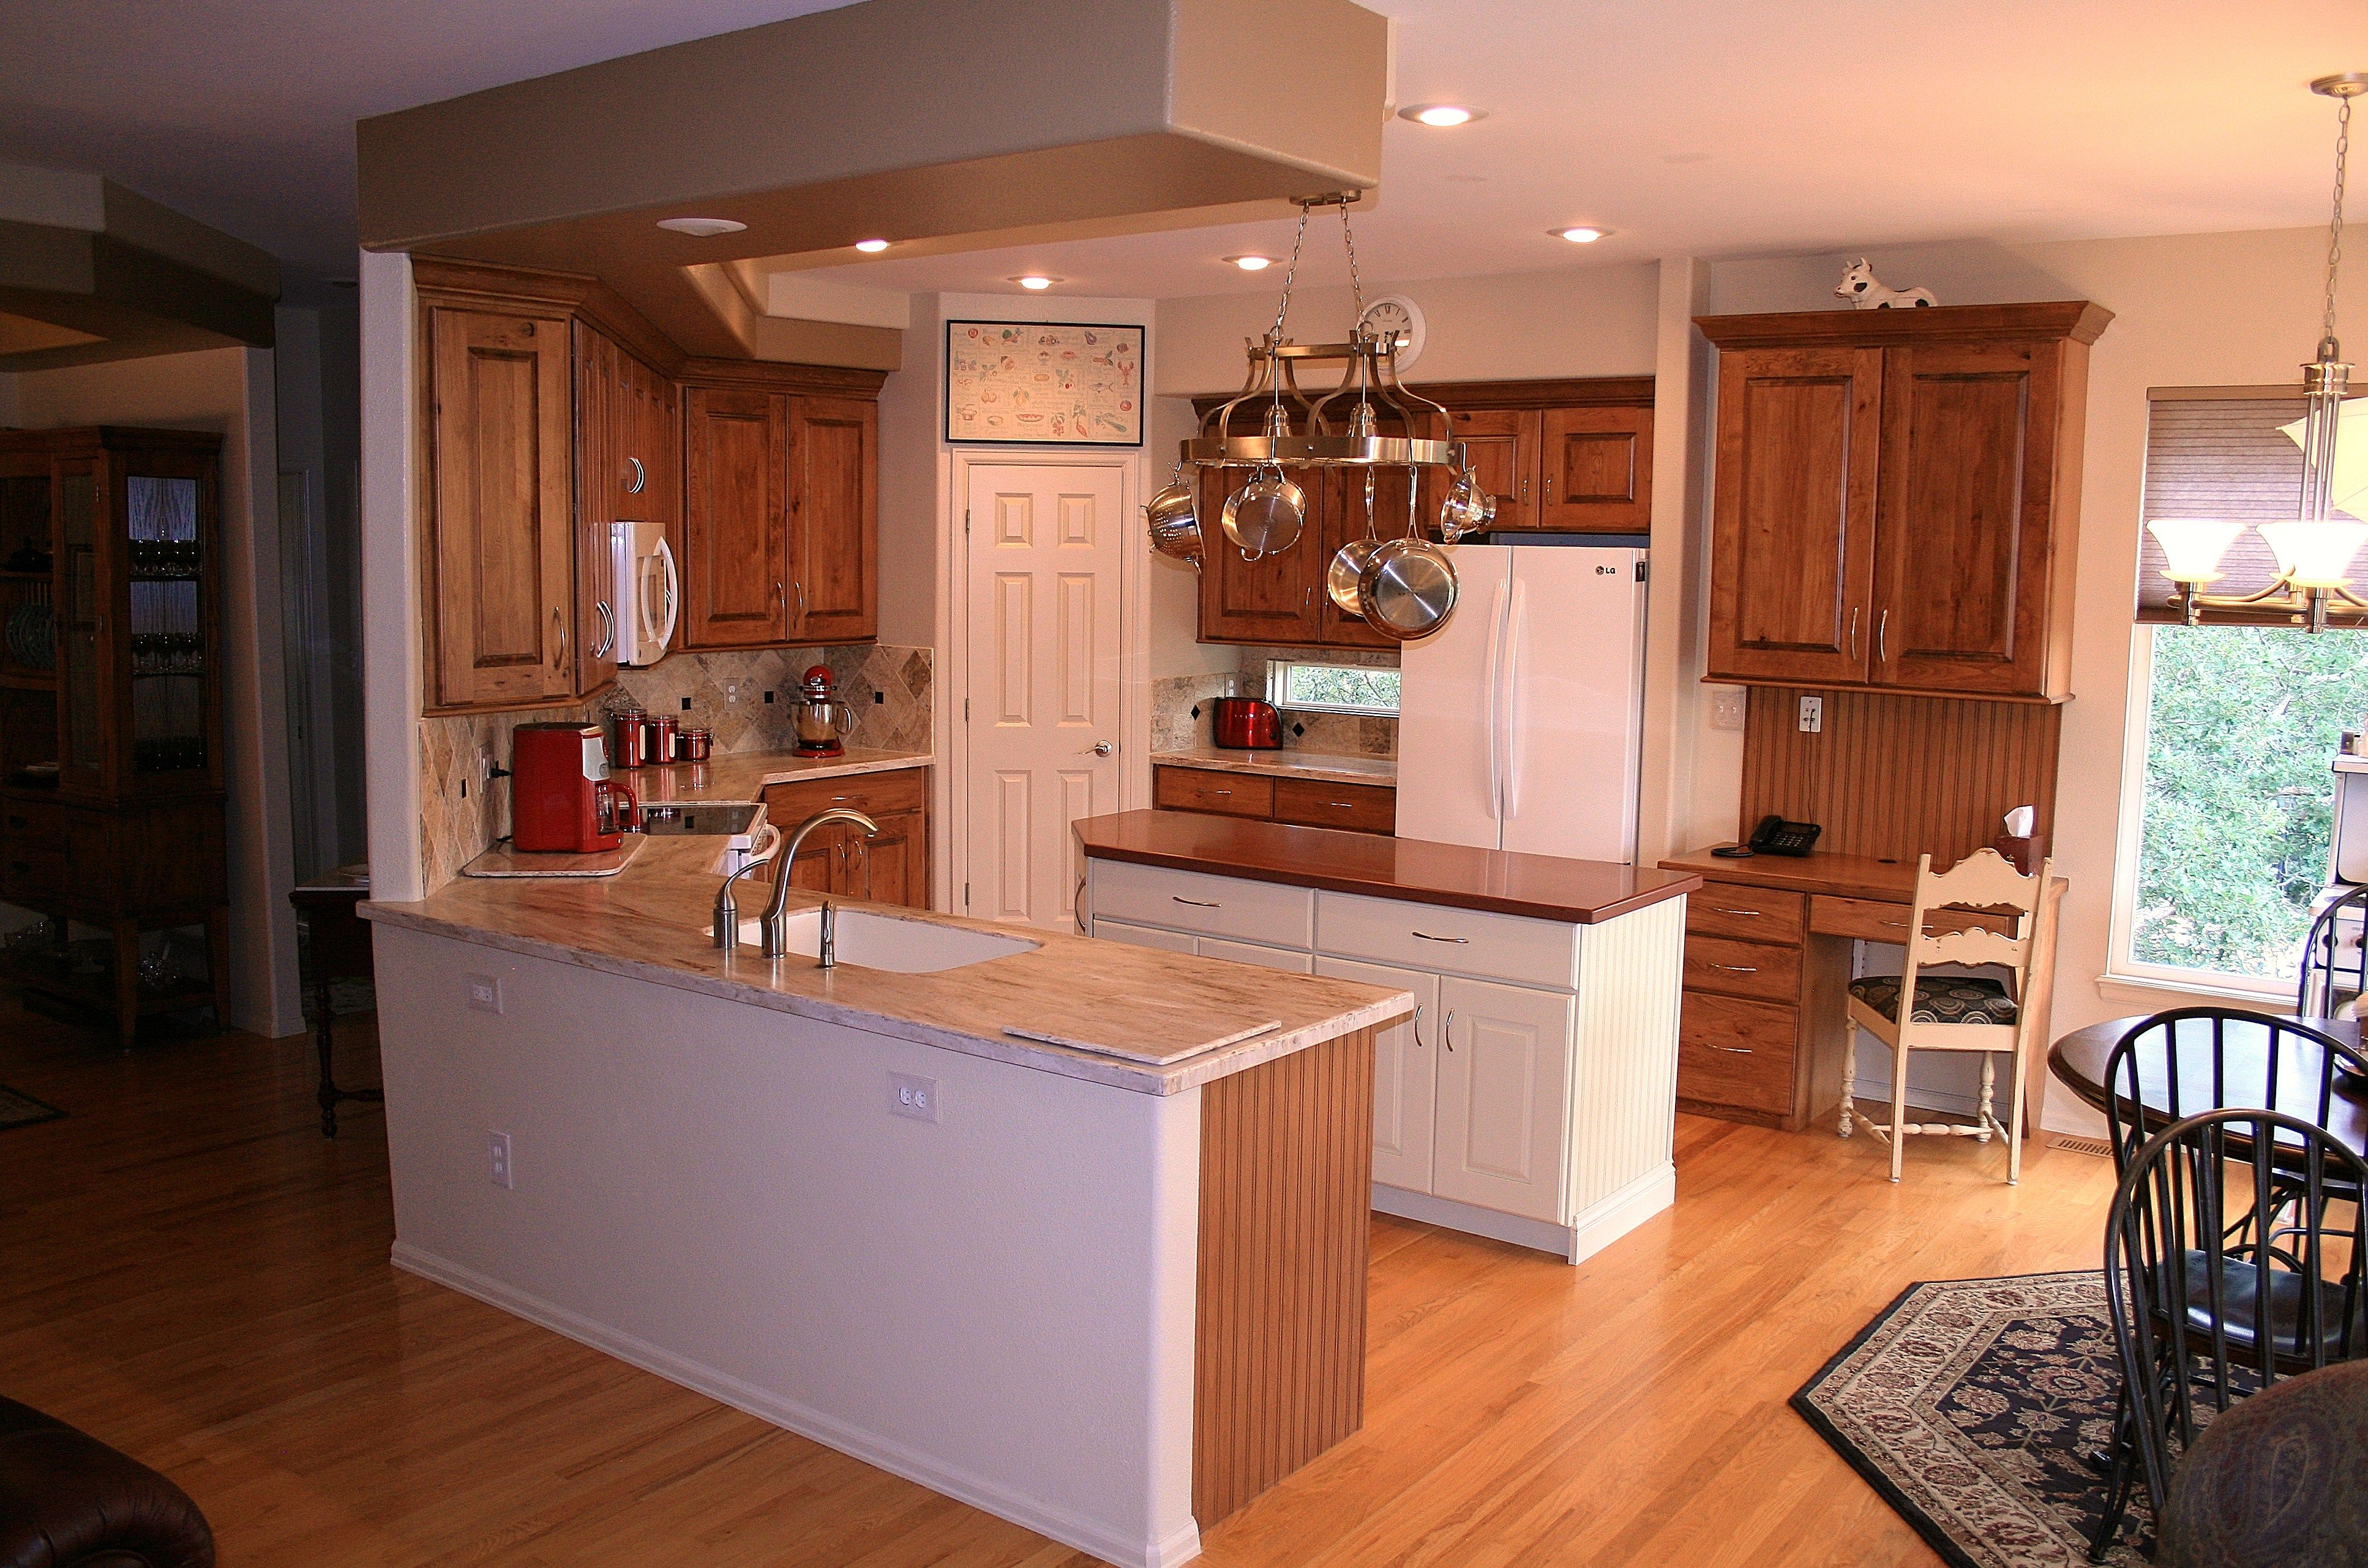 u shaped kitchen with island in middle company projects pinterest on u kitchen with island id=92934